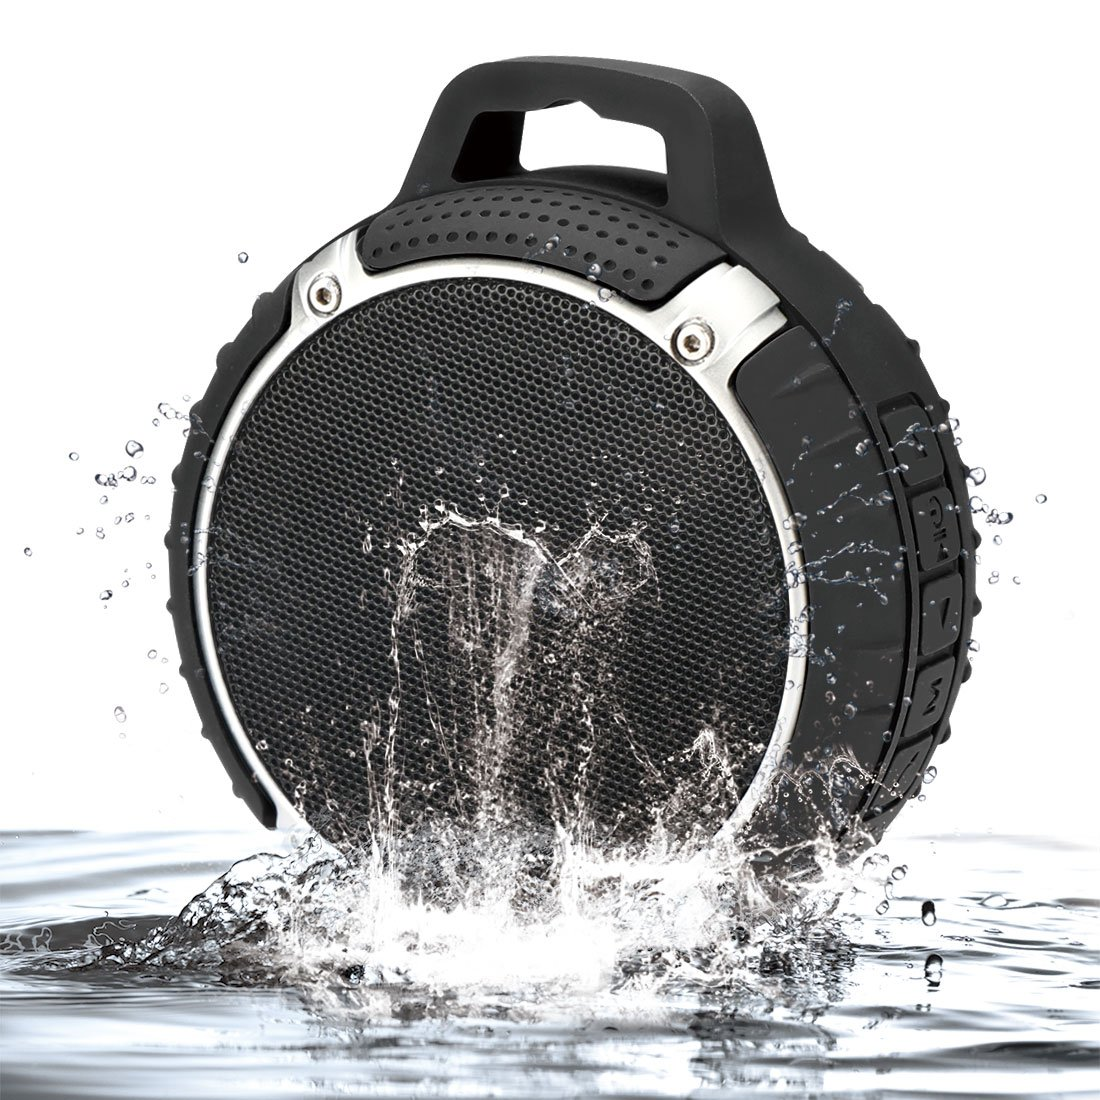 1byone Outdoor / Shower Portable Bluetooth 4.0 Speaker with Enhanced Bass, IPX6 Waterproof & Built-in Mic, Black